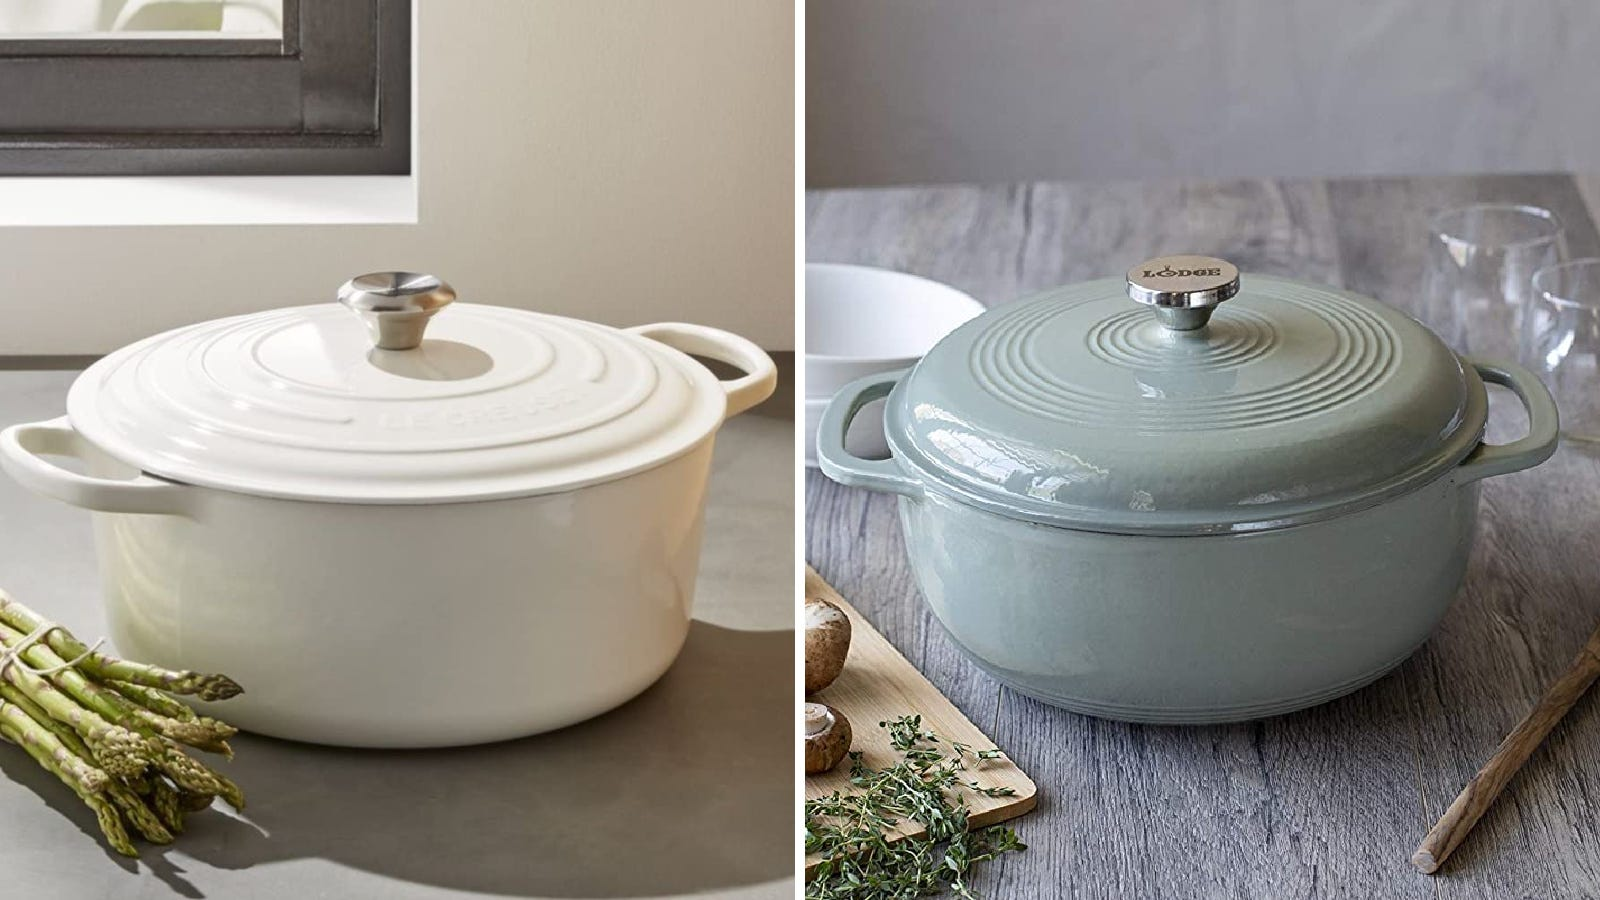 Two images of Dutch ovens: the left is by Le Creuset, and the right is by Lodge.